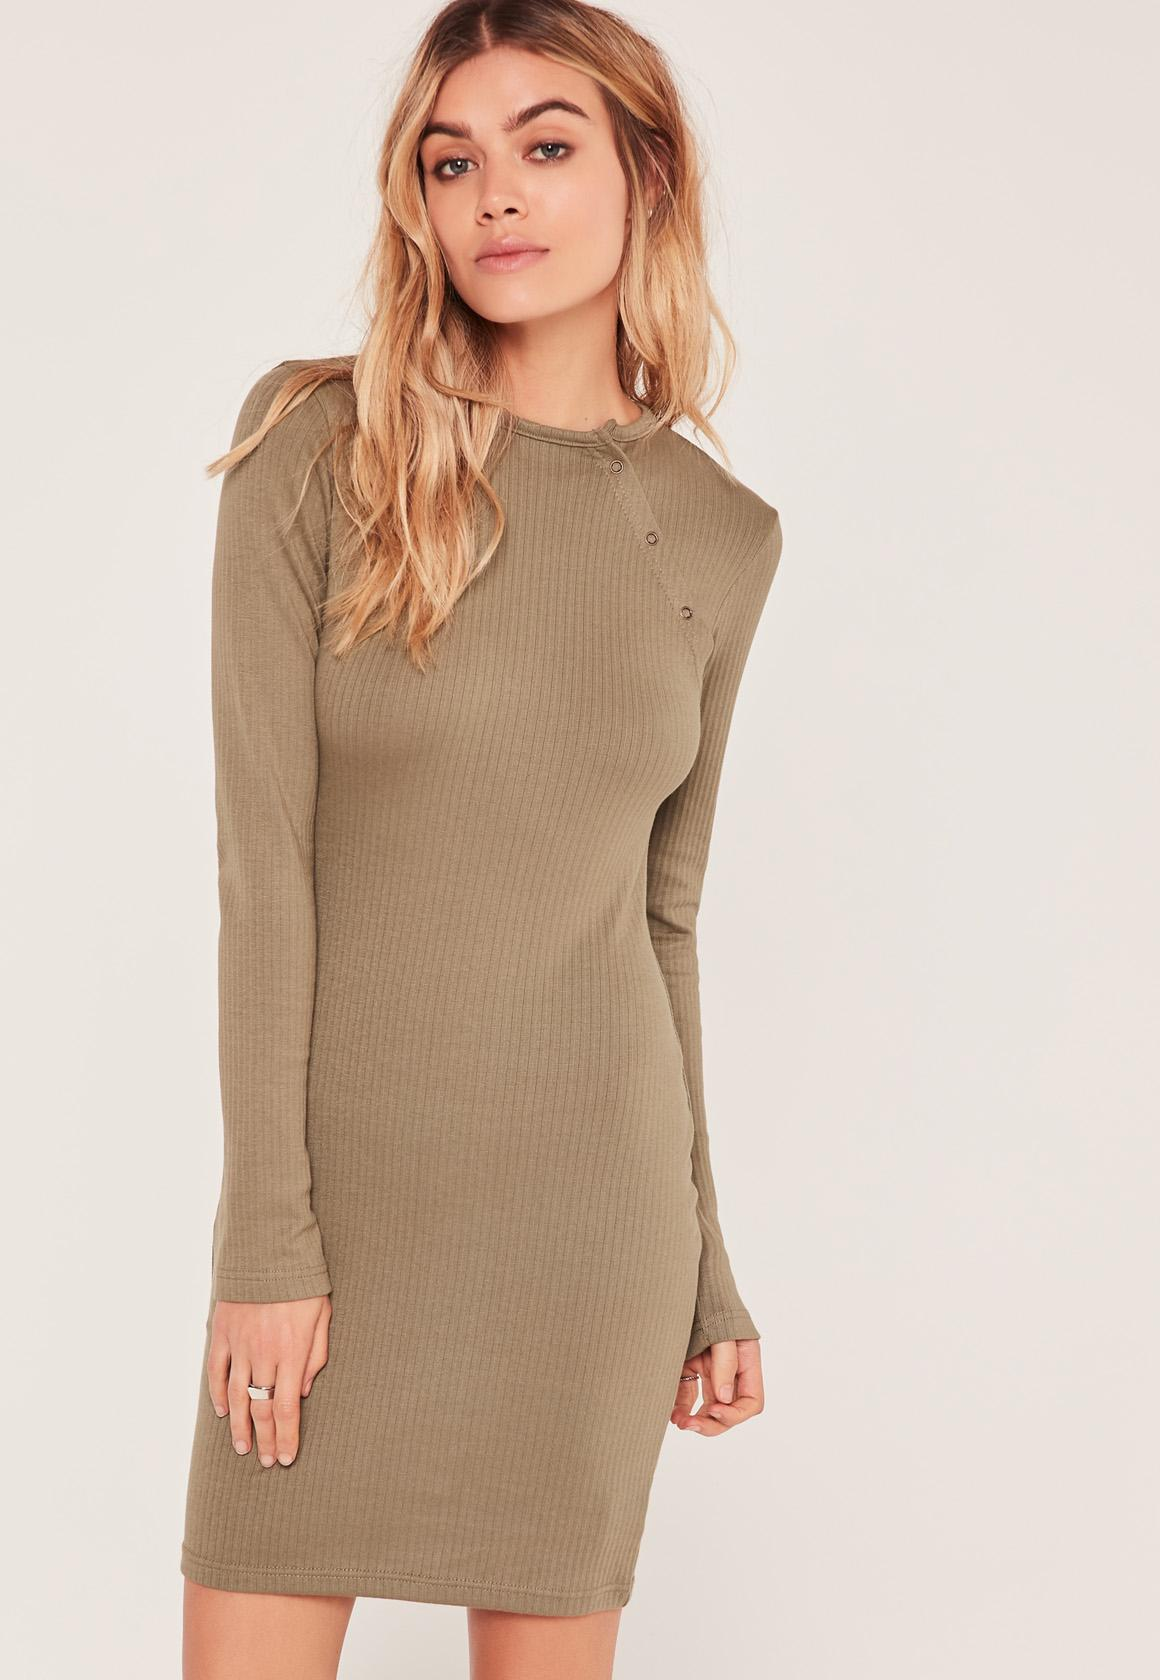 Khaki Ribbed Button Up Shoulder Bodycon Dress